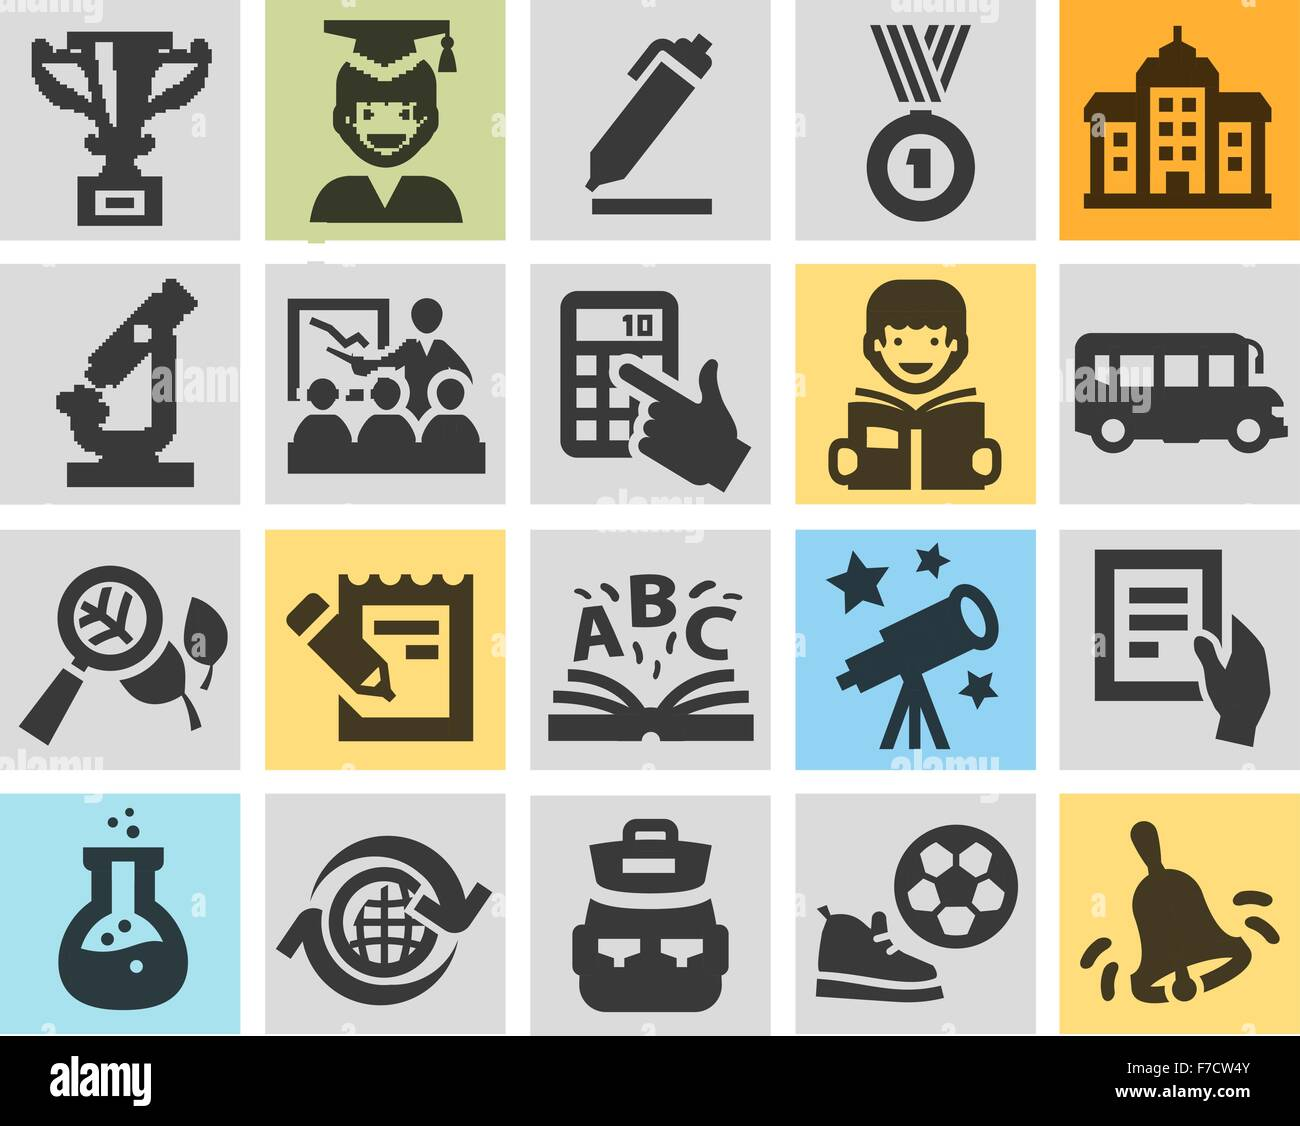 School education set black icons signs and symbols stock vector school education set black icons signs and symbols buycottarizona Image collections